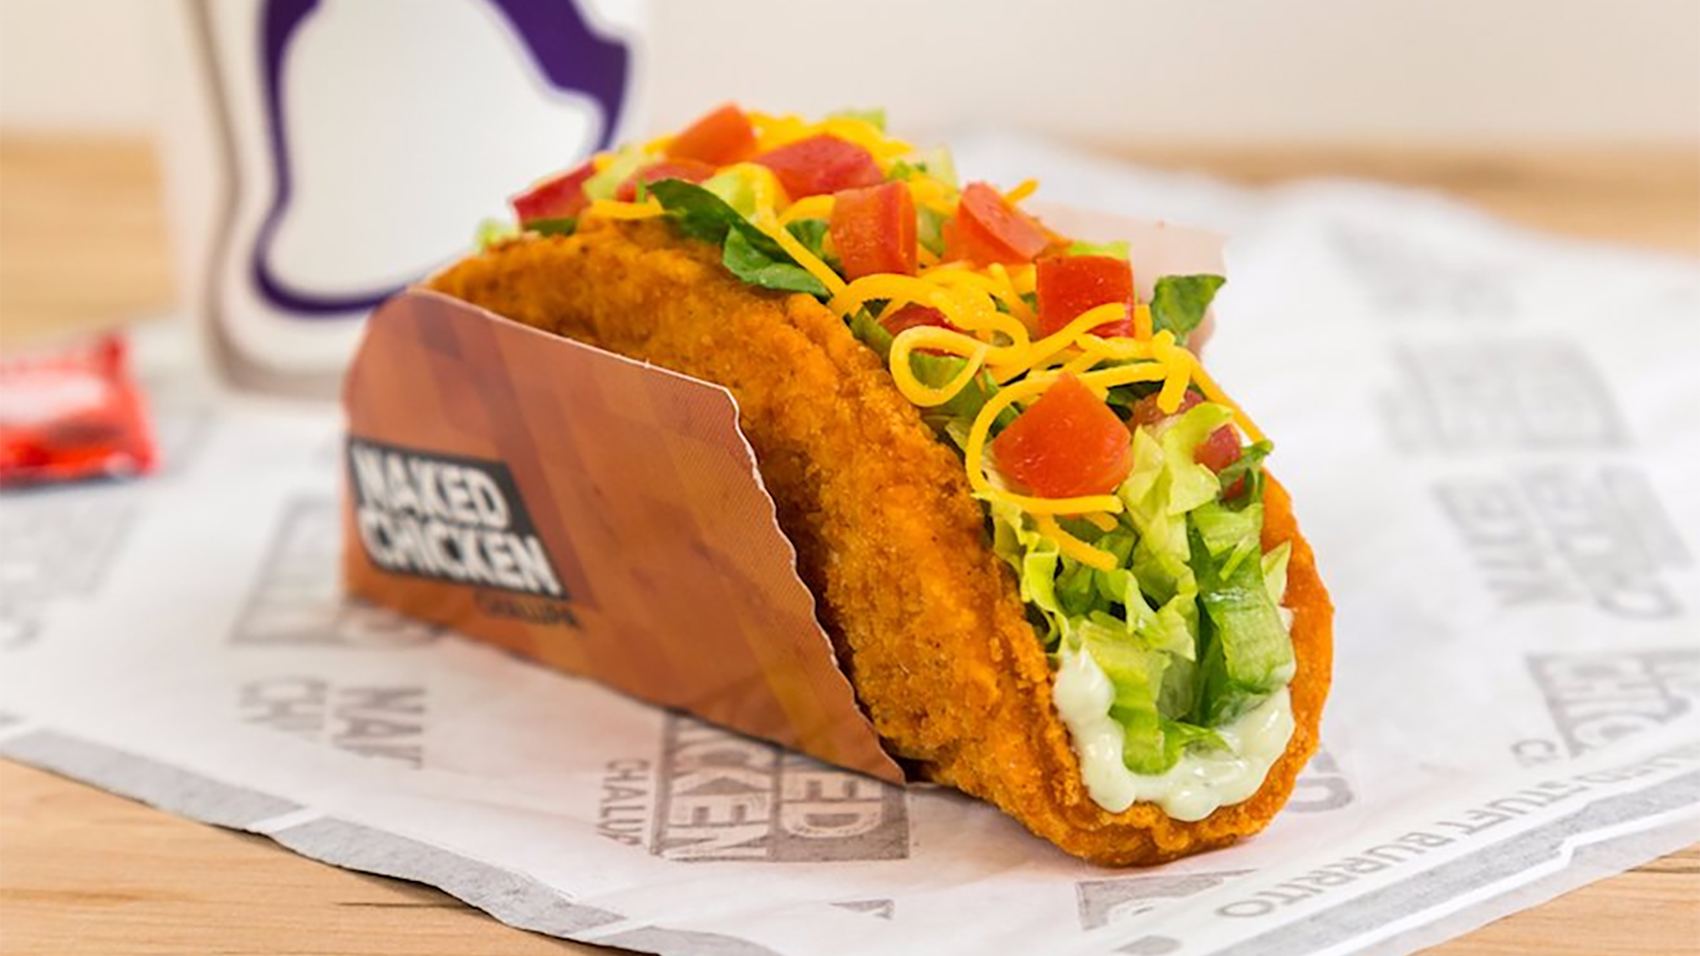 naked-chalupa-taco-bell